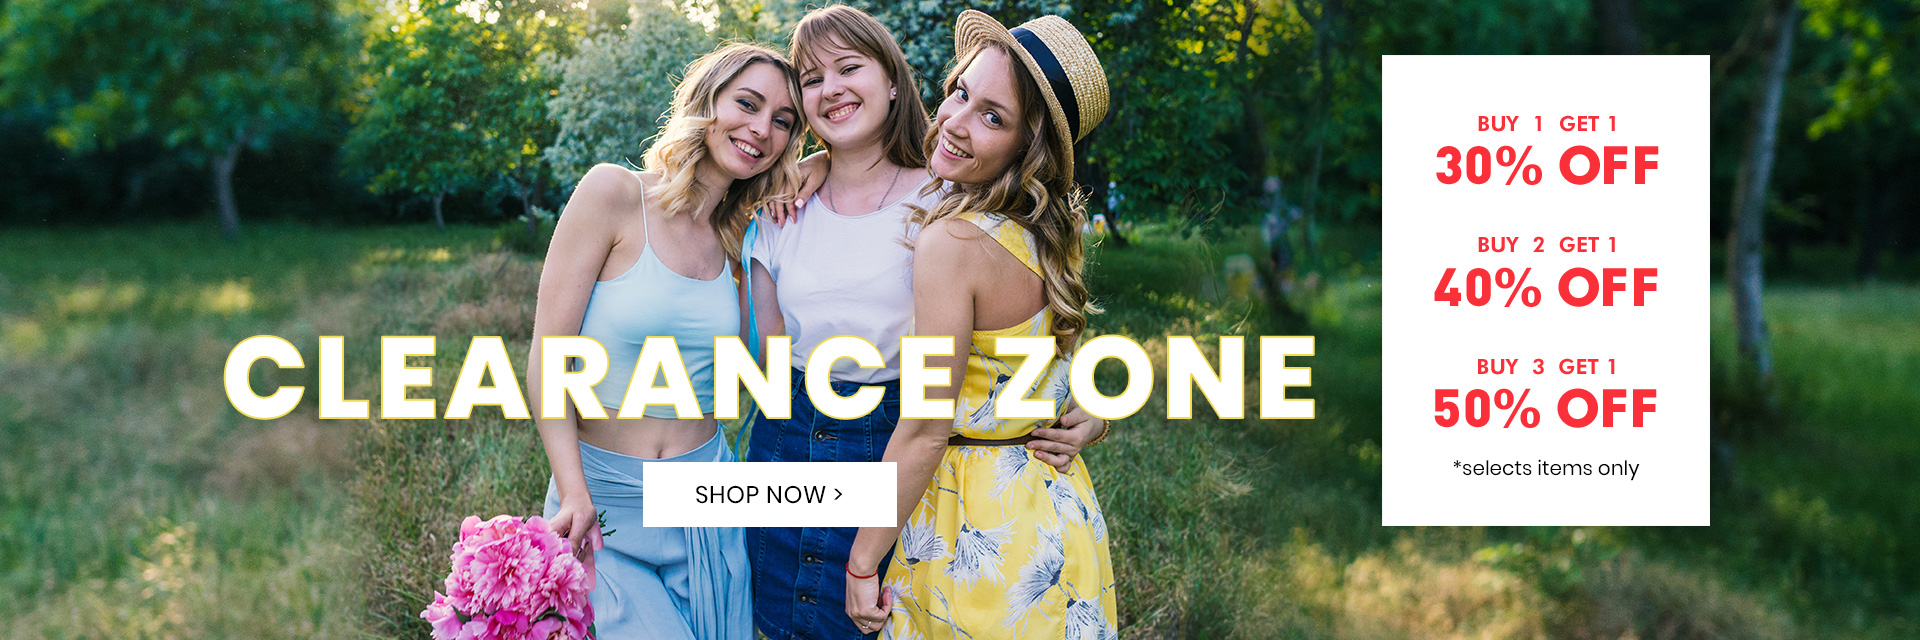 50% Off Summer Clearance Zone Sale